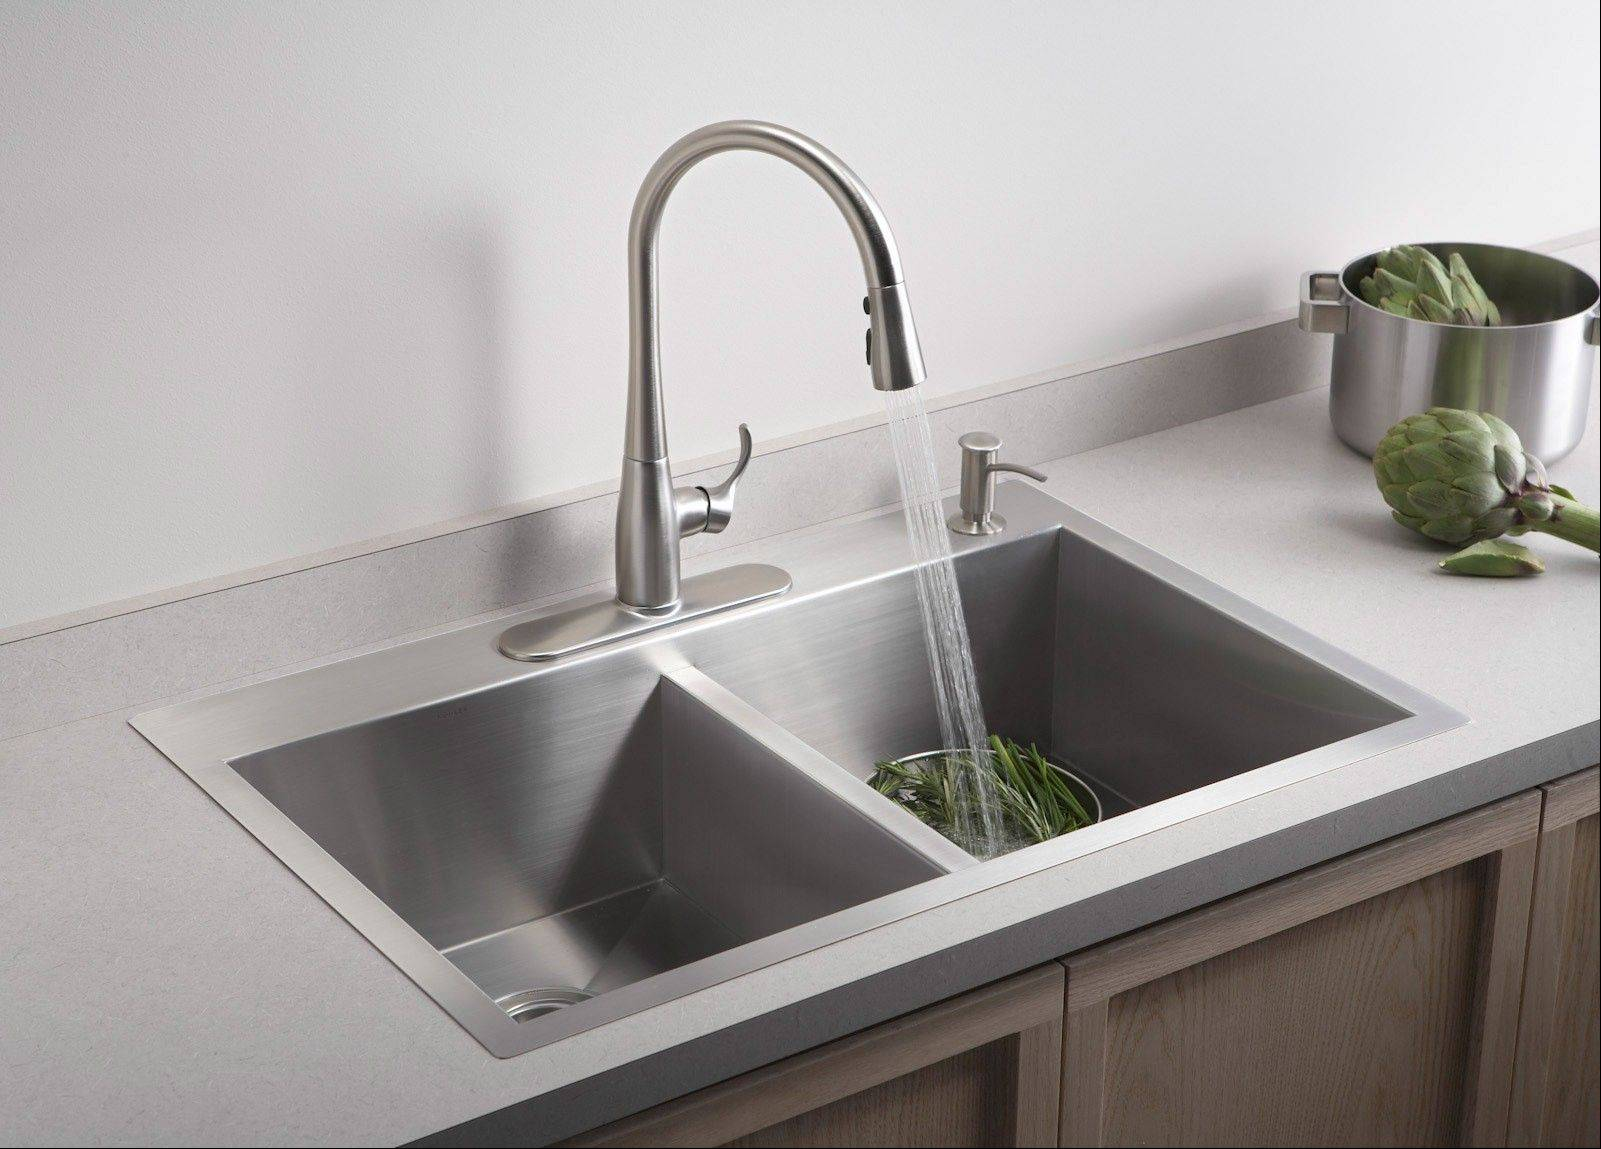 A Built In Soap Dispenser Can Be A Nice Addition To Any Kitchen Sink